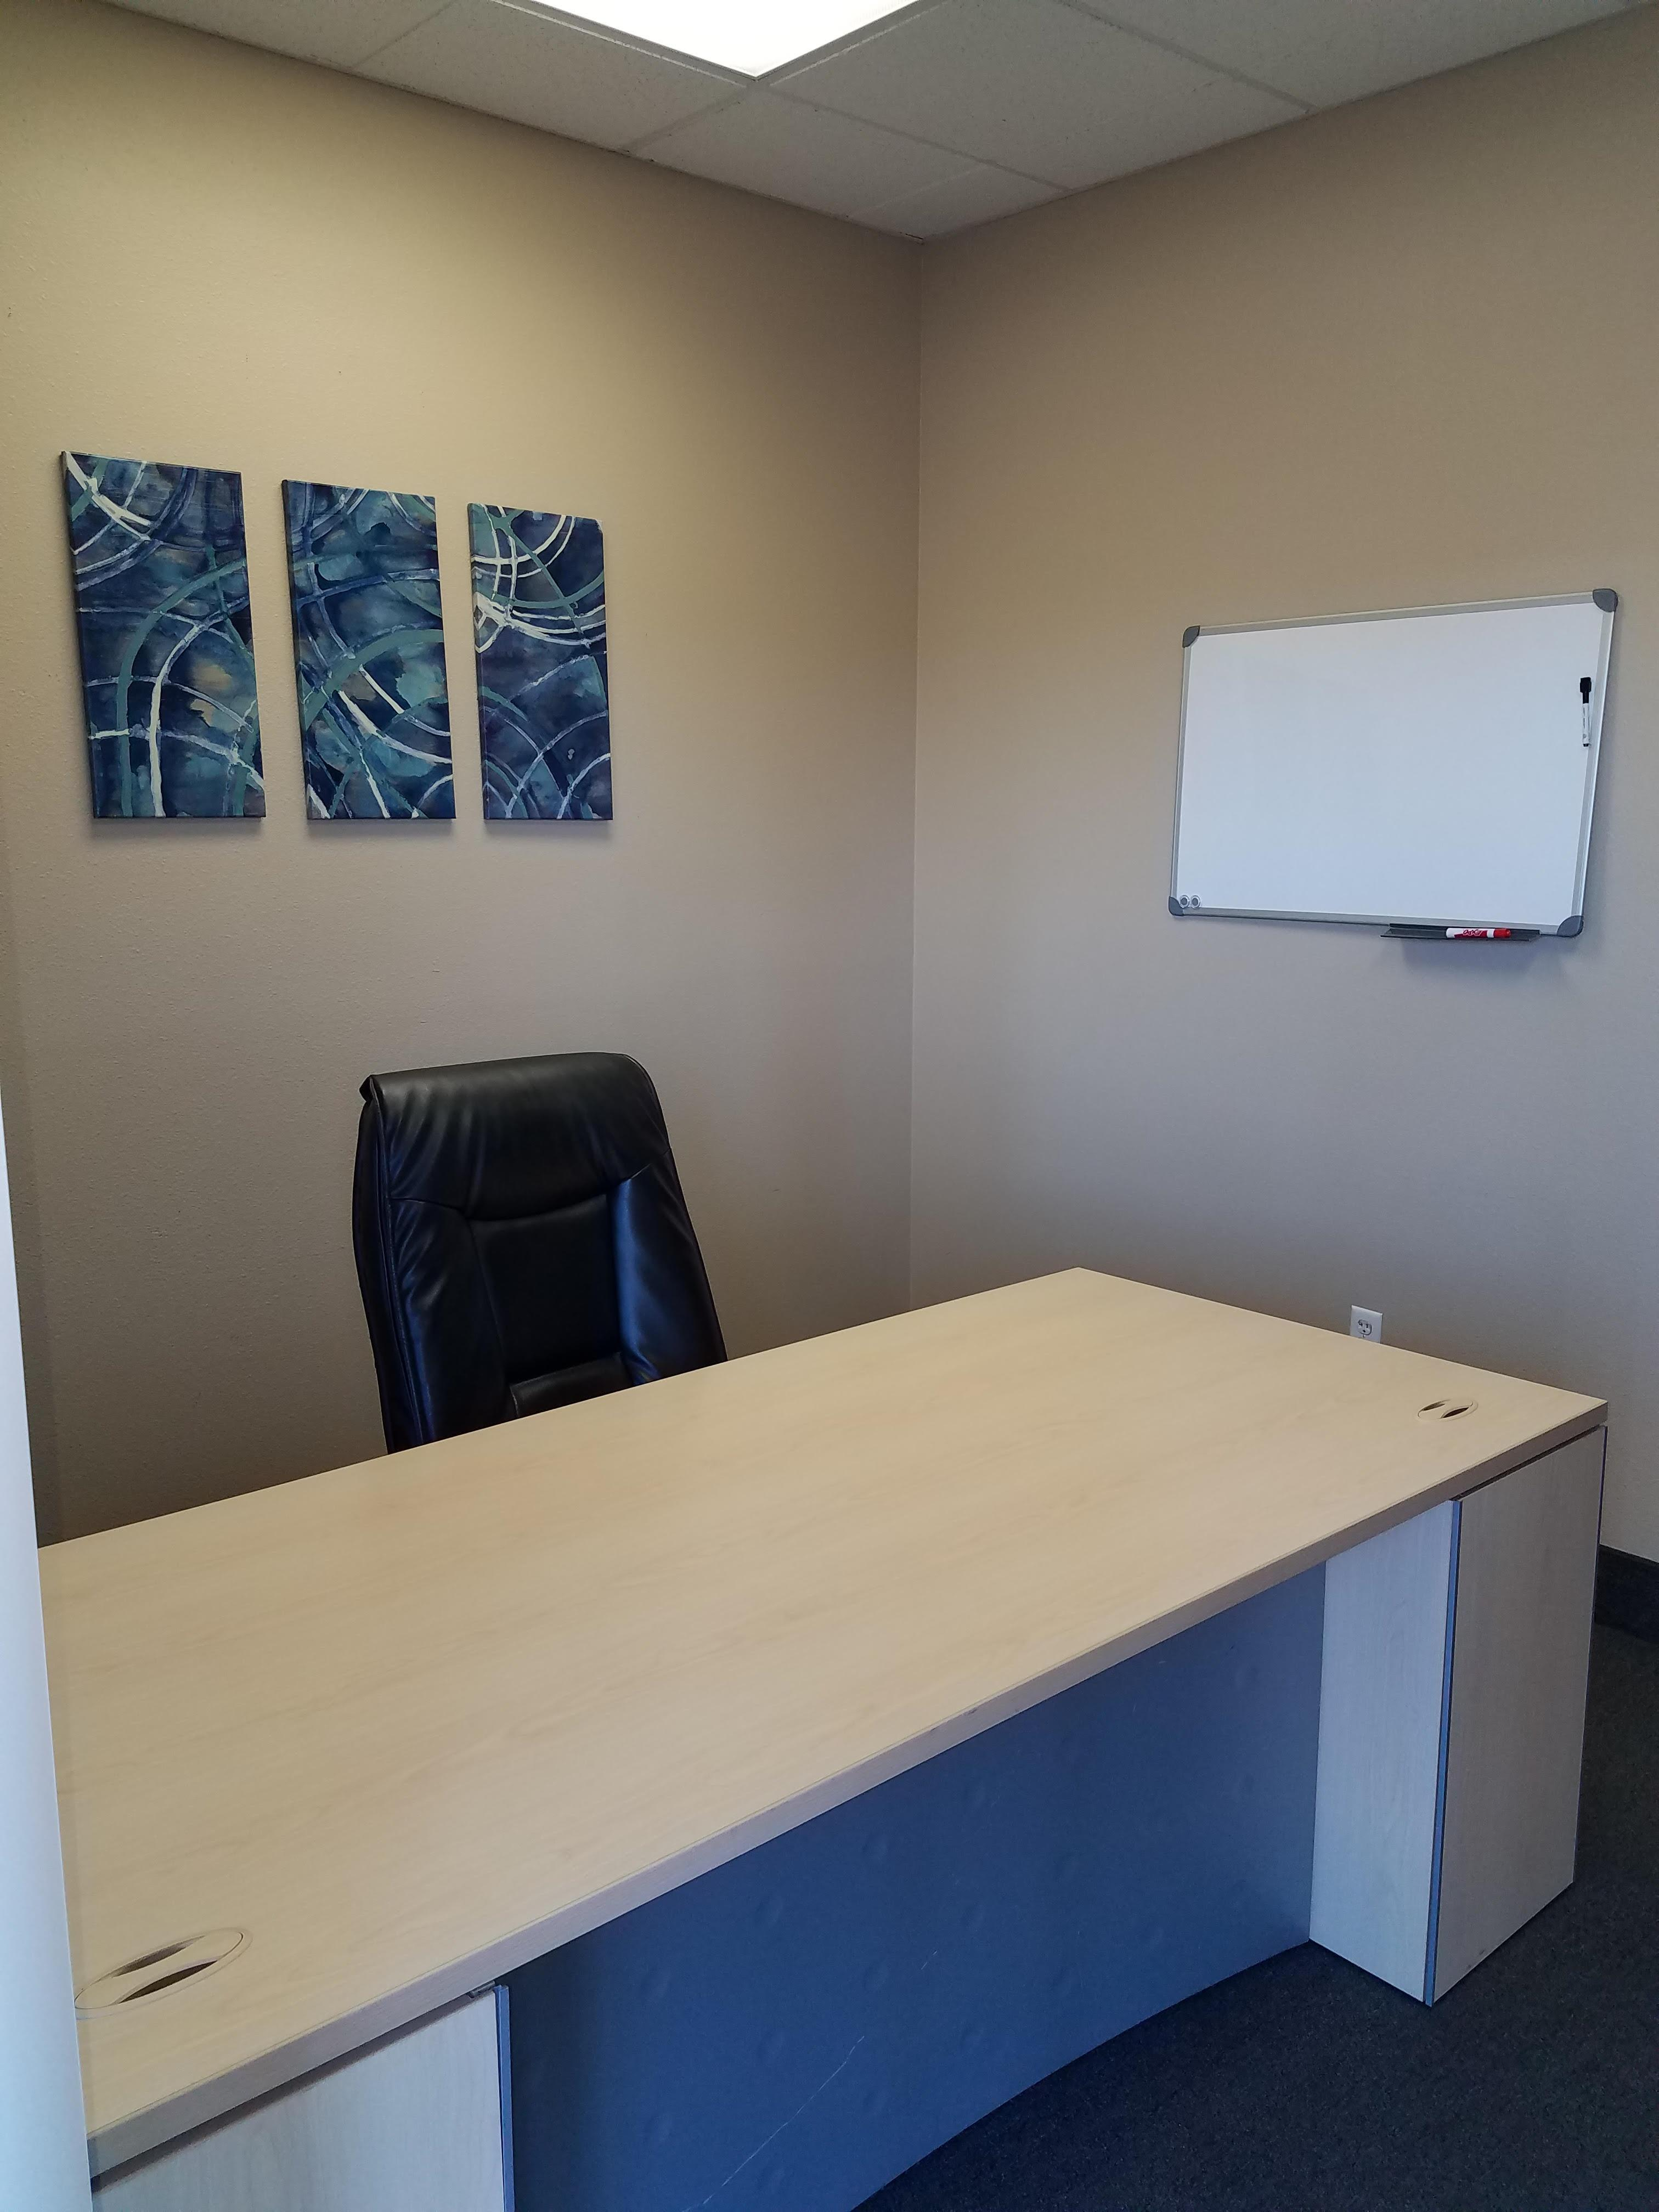 Evus Technologies - Full Suite - 5 Offices and Common Area